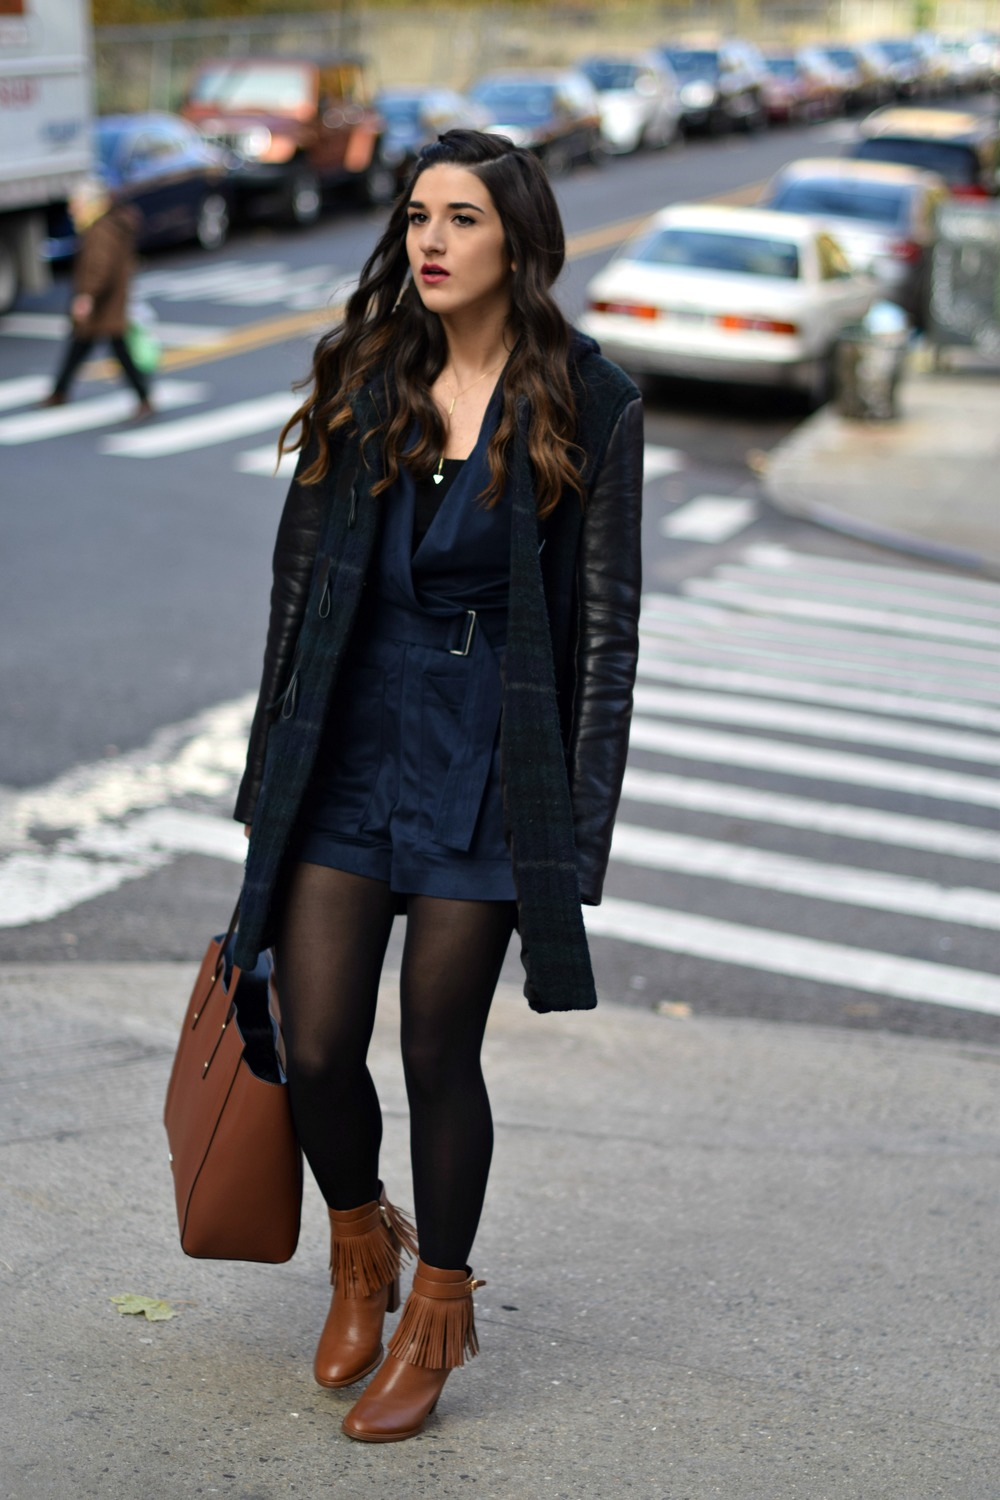 Navy Romper Fringe Booties Louboutins & Love Fashion Blog Esther Santer NYC Street Style Blogger Zara Plaid Coat Leather Sleeves Girl Women OOTD Outfit Accessories Soho Tote Ivanka Trump Black Tights Boots Shoes Winter Hair Braid Inspo Jewelry Rings.jpg